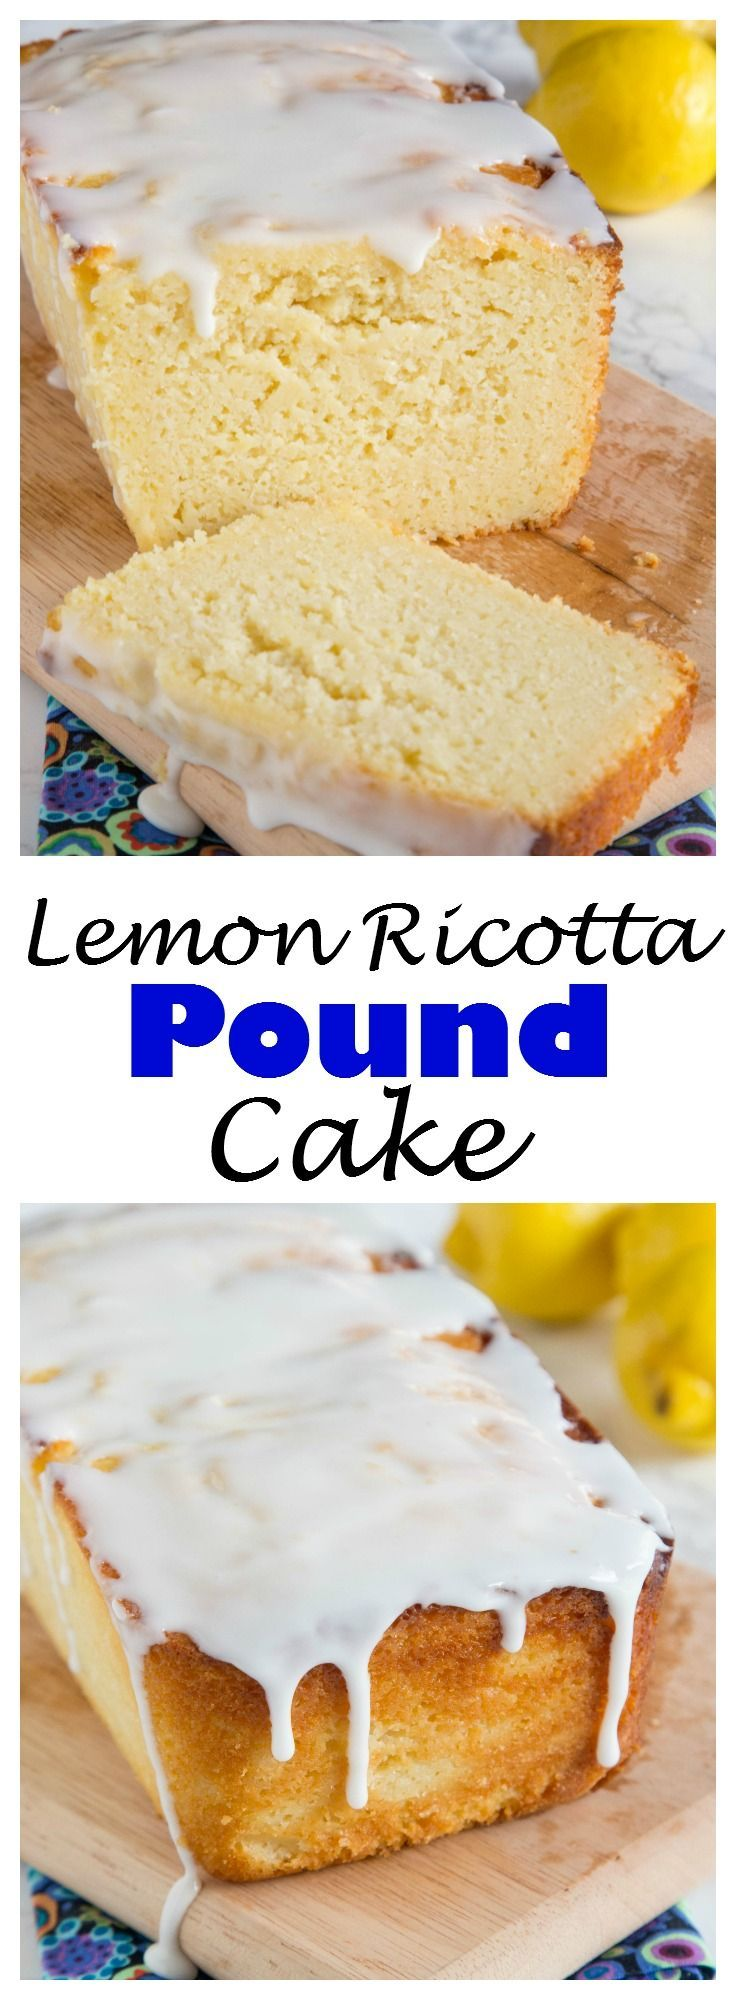 LEMON RICOTTA POUND CAKE – A DENSE AND SUPER MOIST LEMON POUND CAKE TOPPED WITH A LEMON GLAZE.